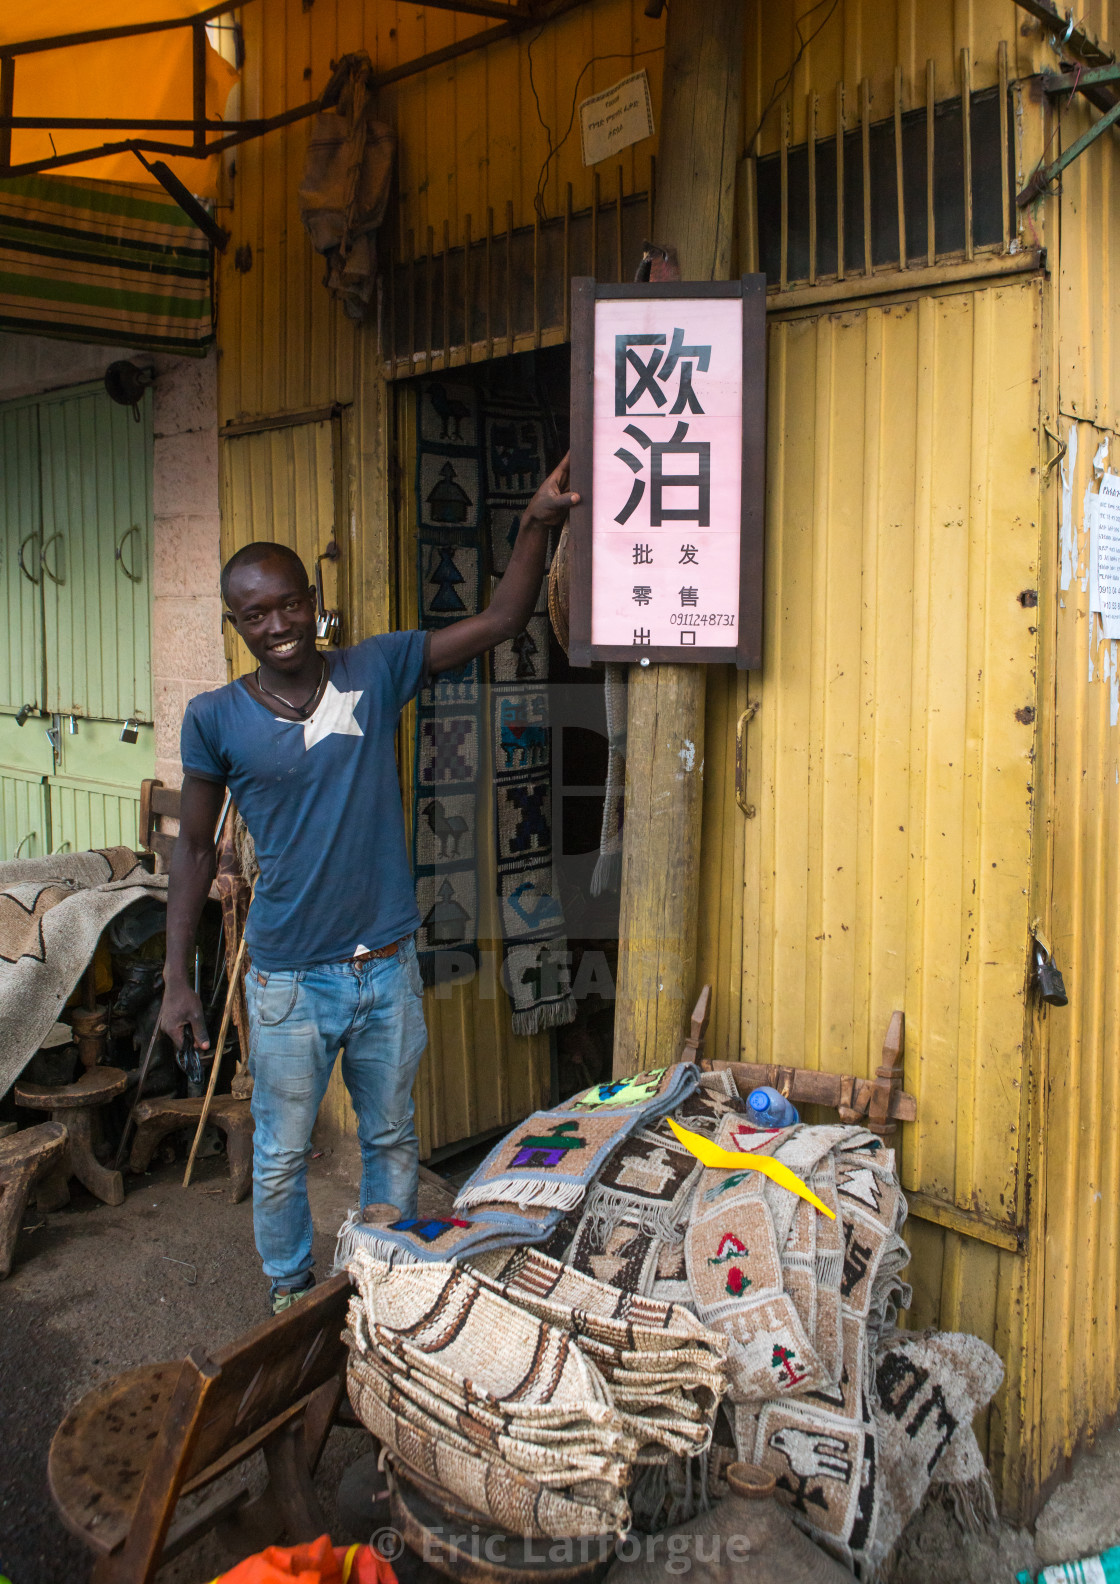 Ethiopian man in front of a billboard in chinese language to